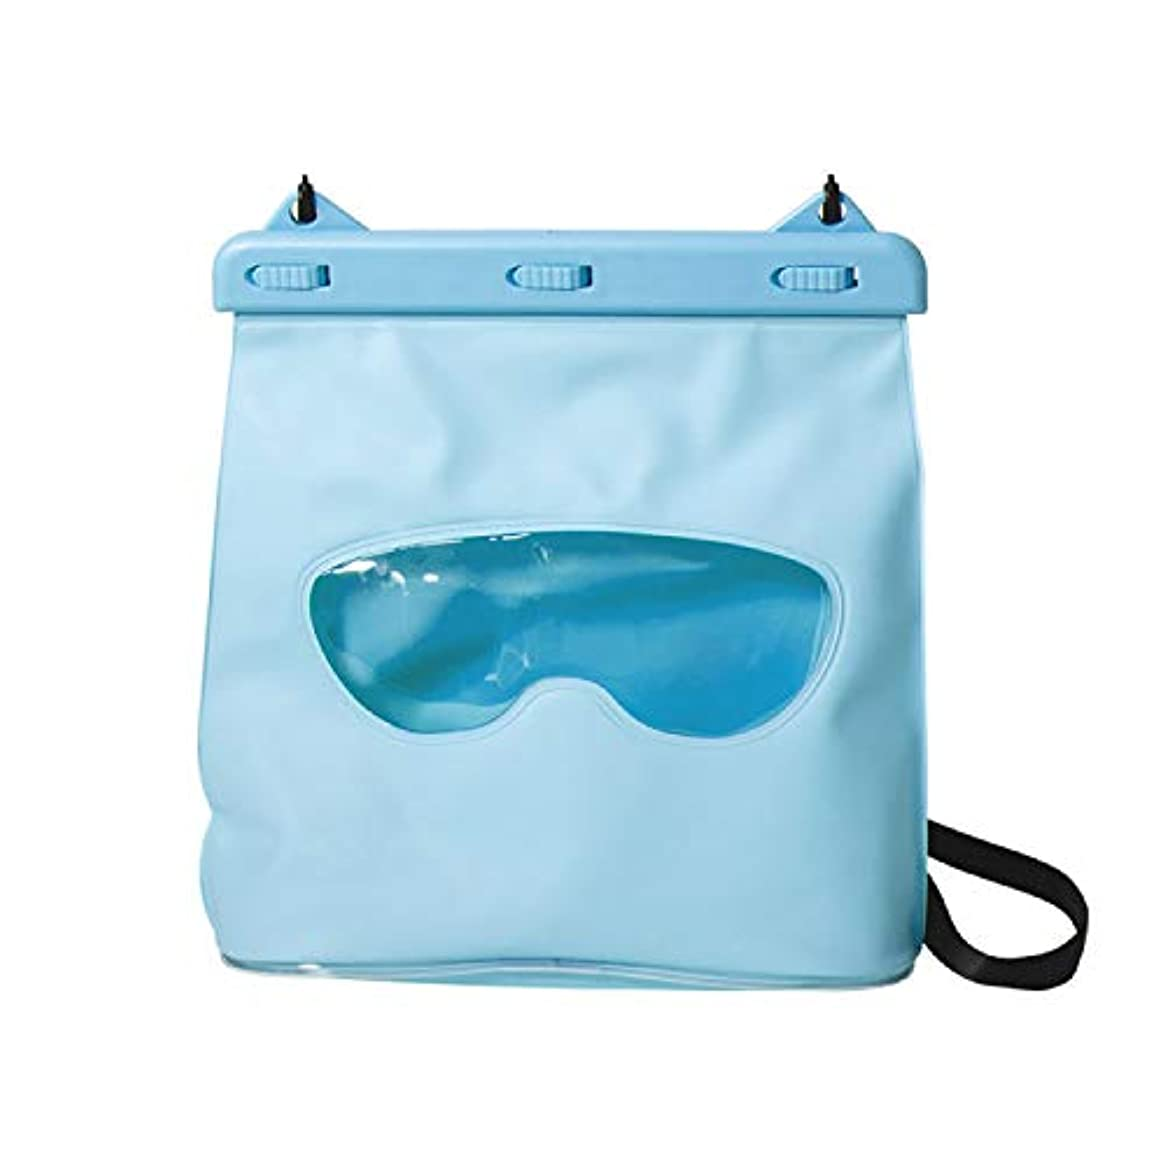 LAQ DESiGN Perspective Waterproof Storage Bag, Dry Bag w/Shoulder Strap for Swimming, Boating, Traveling, Snorkeling, Kayaking, Fishing, Diving, Hiking, Camping